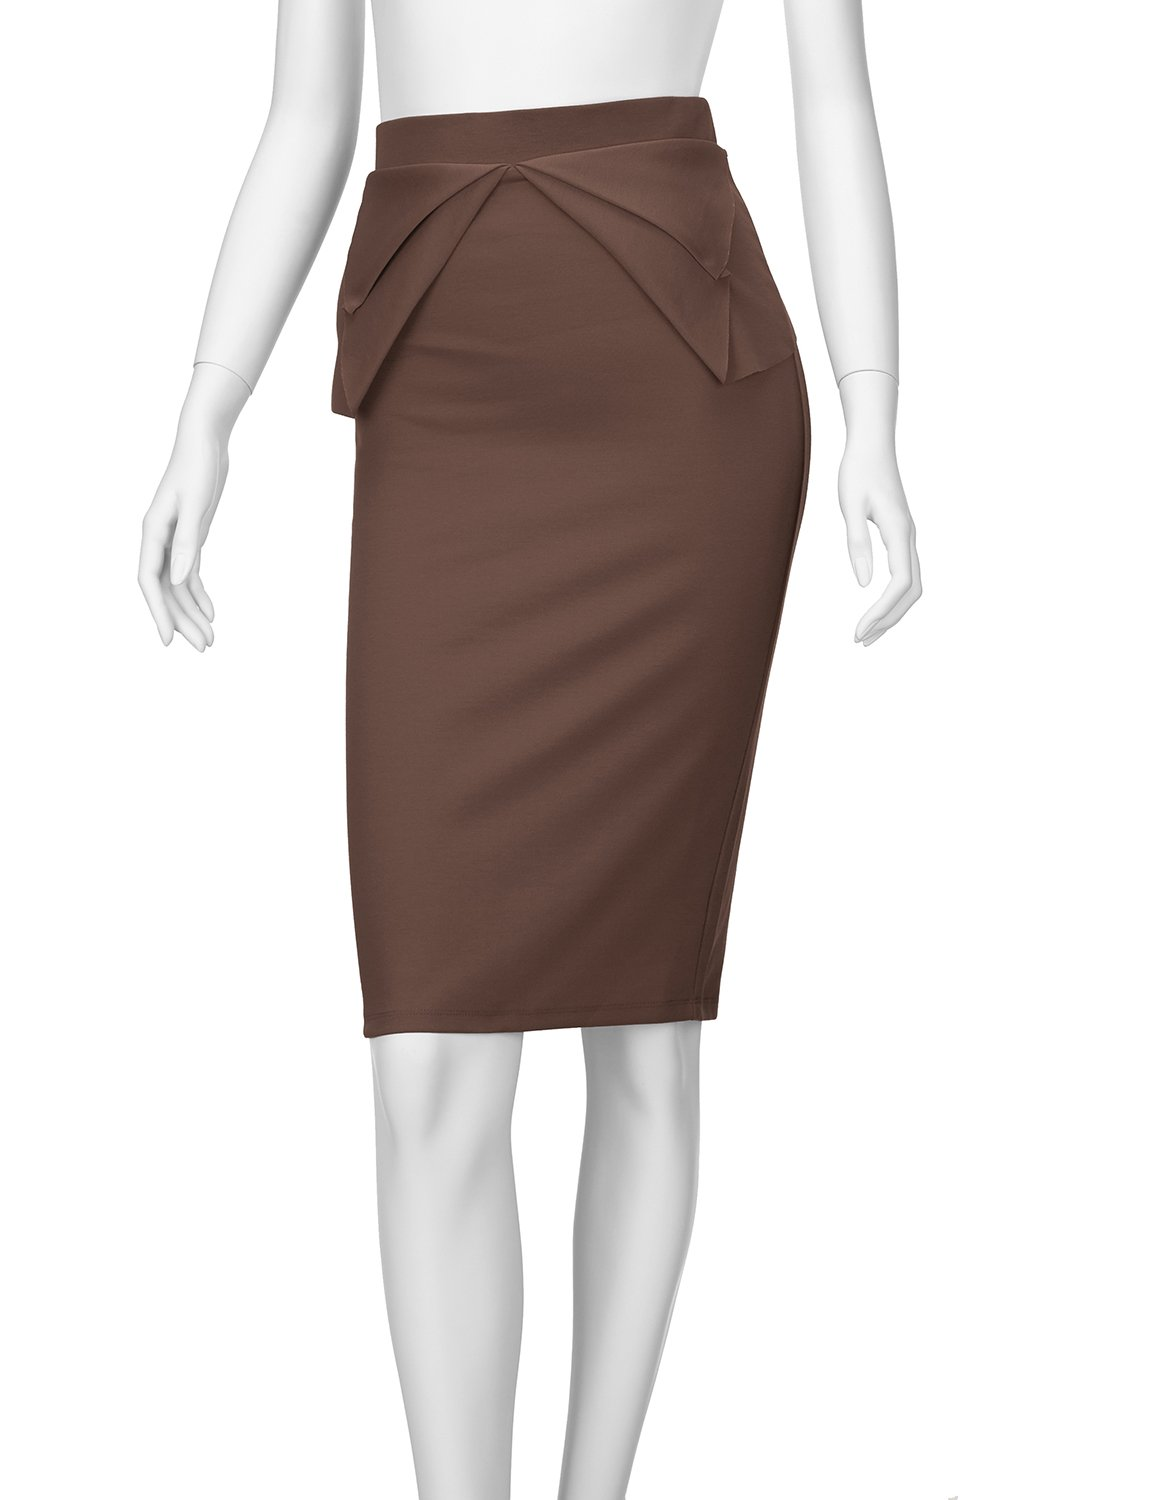 Regna X Womens high Waist Elastic Band Sexy Knee Length Skirts Brown XL by Regna X (Image #5)